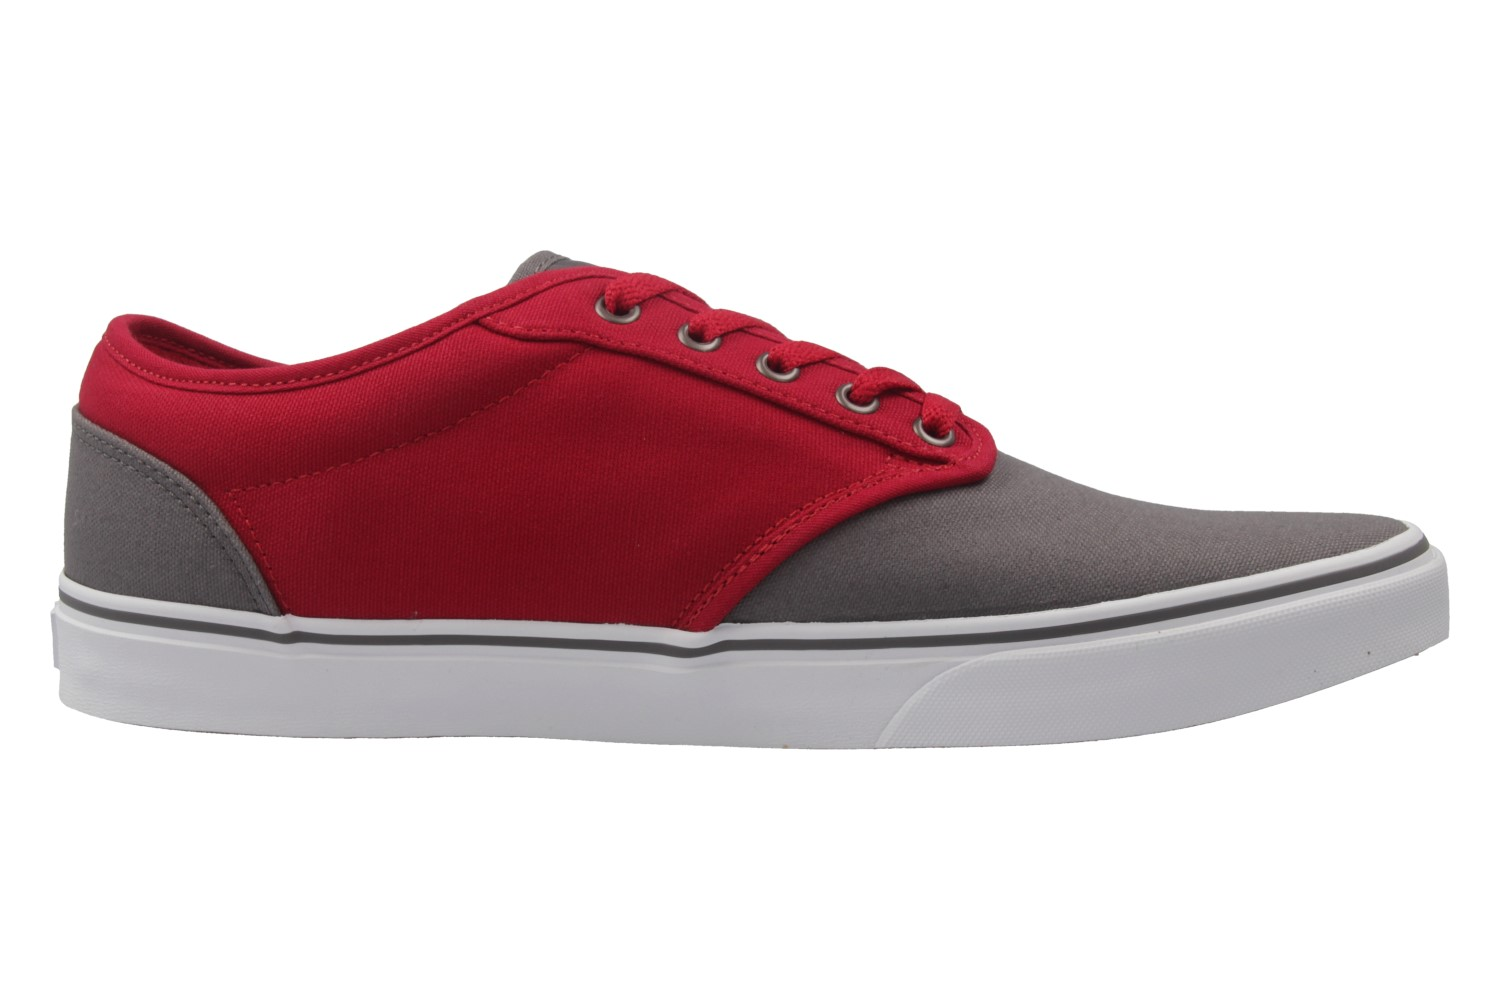 vans herren sneaker grau rot gro e schuhe xxl bergr e ebay. Black Bedroom Furniture Sets. Home Design Ideas